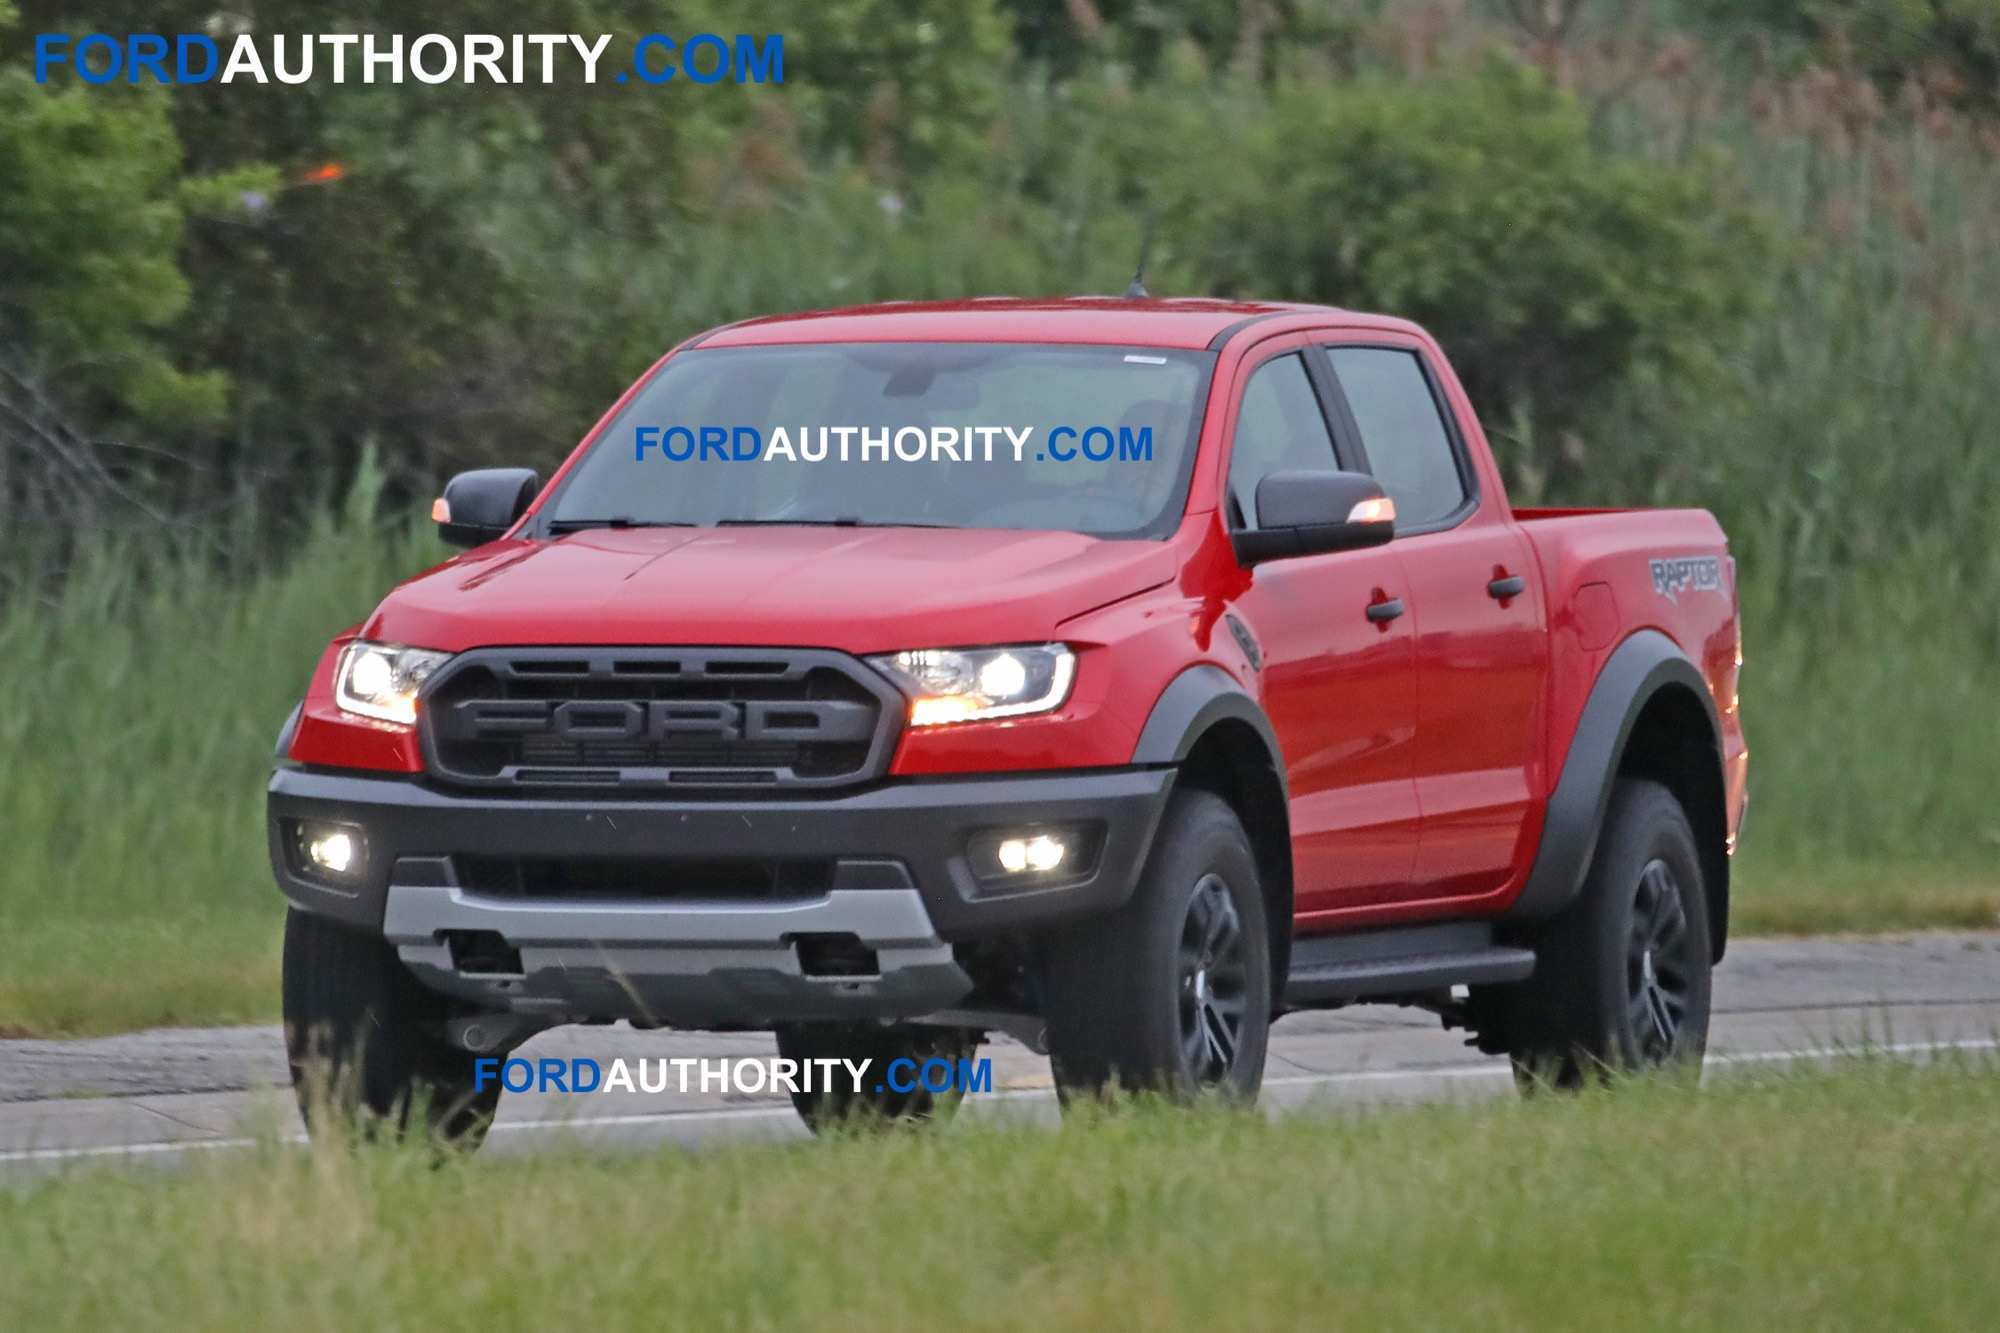 97 New 2019 Ford Ranger Usa Specs Spy Shoot with 2019 Ford Ranger Usa Specs